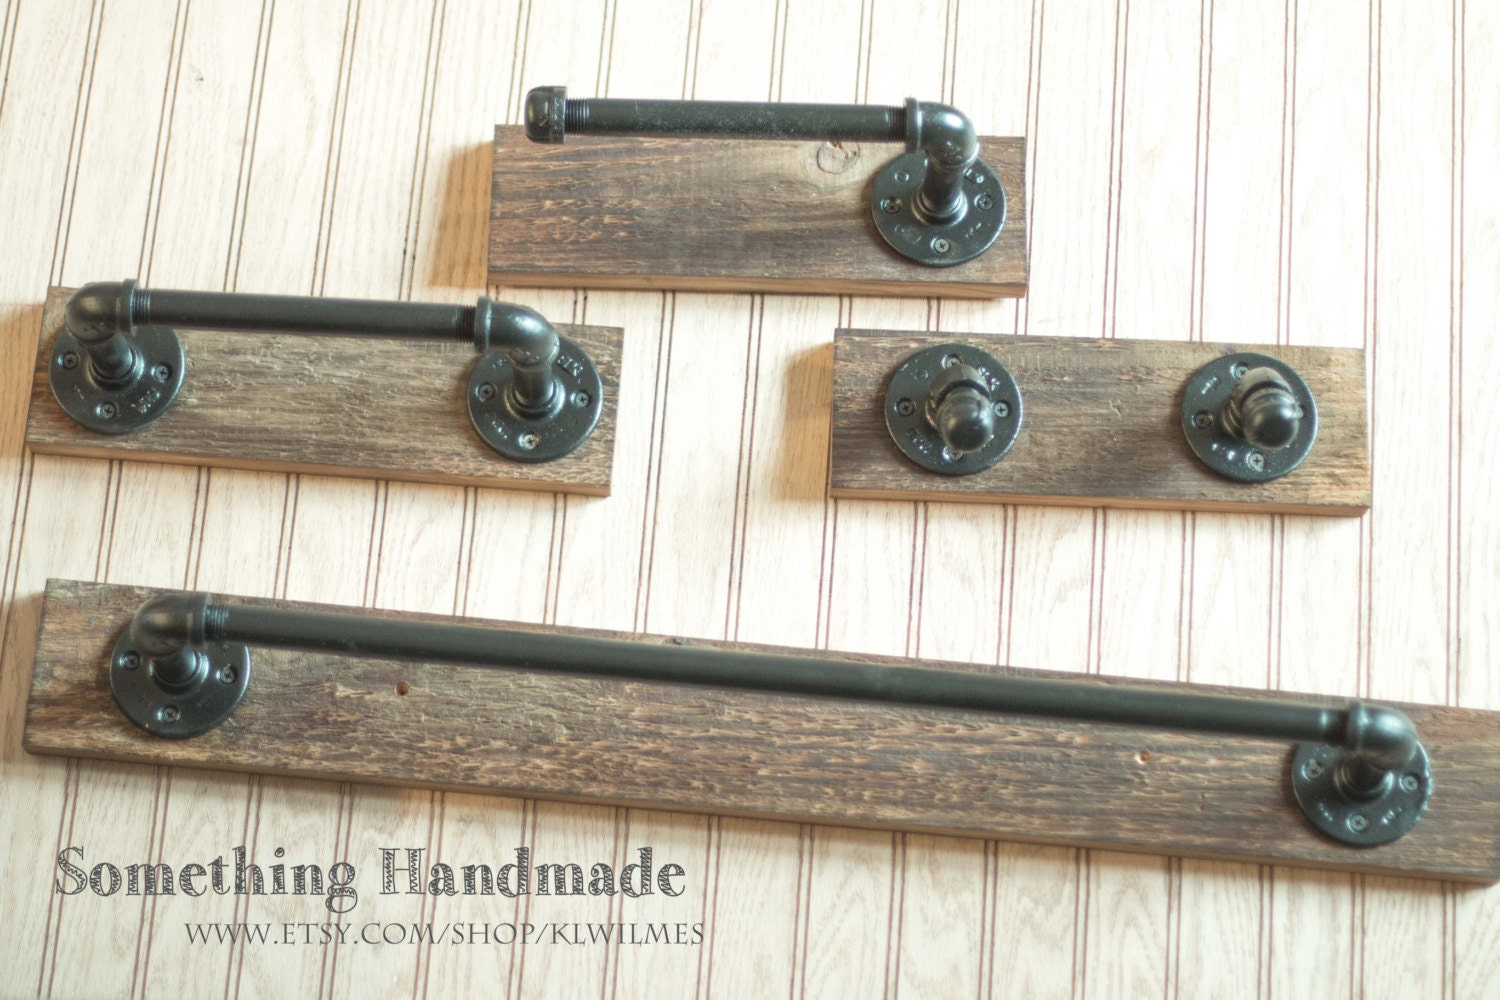 Barn Wood Bathroom Set Towel Bars Toilet Paper Holders And - Bathroom towel bars and toilet paper holders for bathroom decor ideas